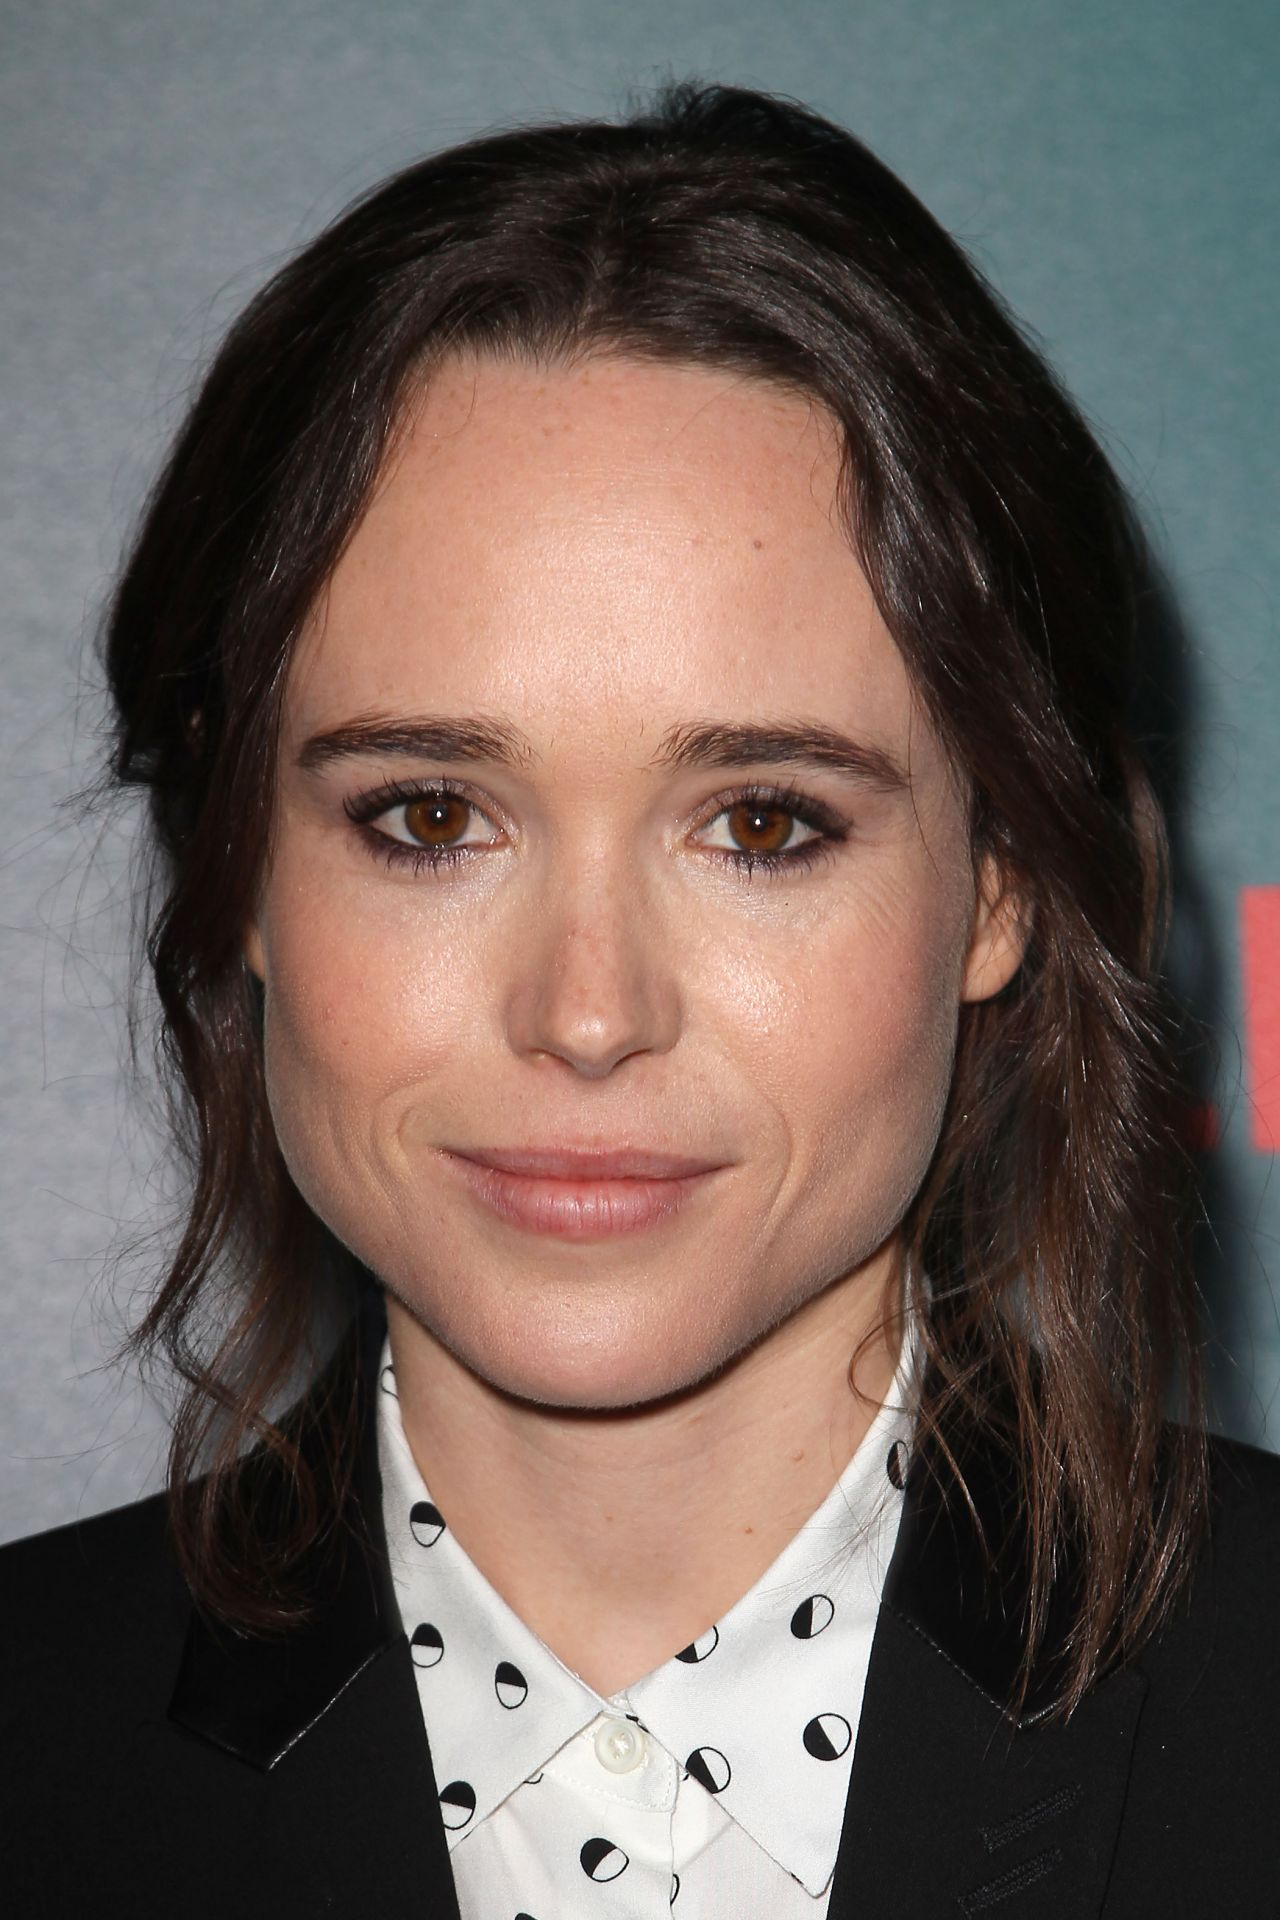 Ellen Page Latest Photos - CelebMafia Ellen Page